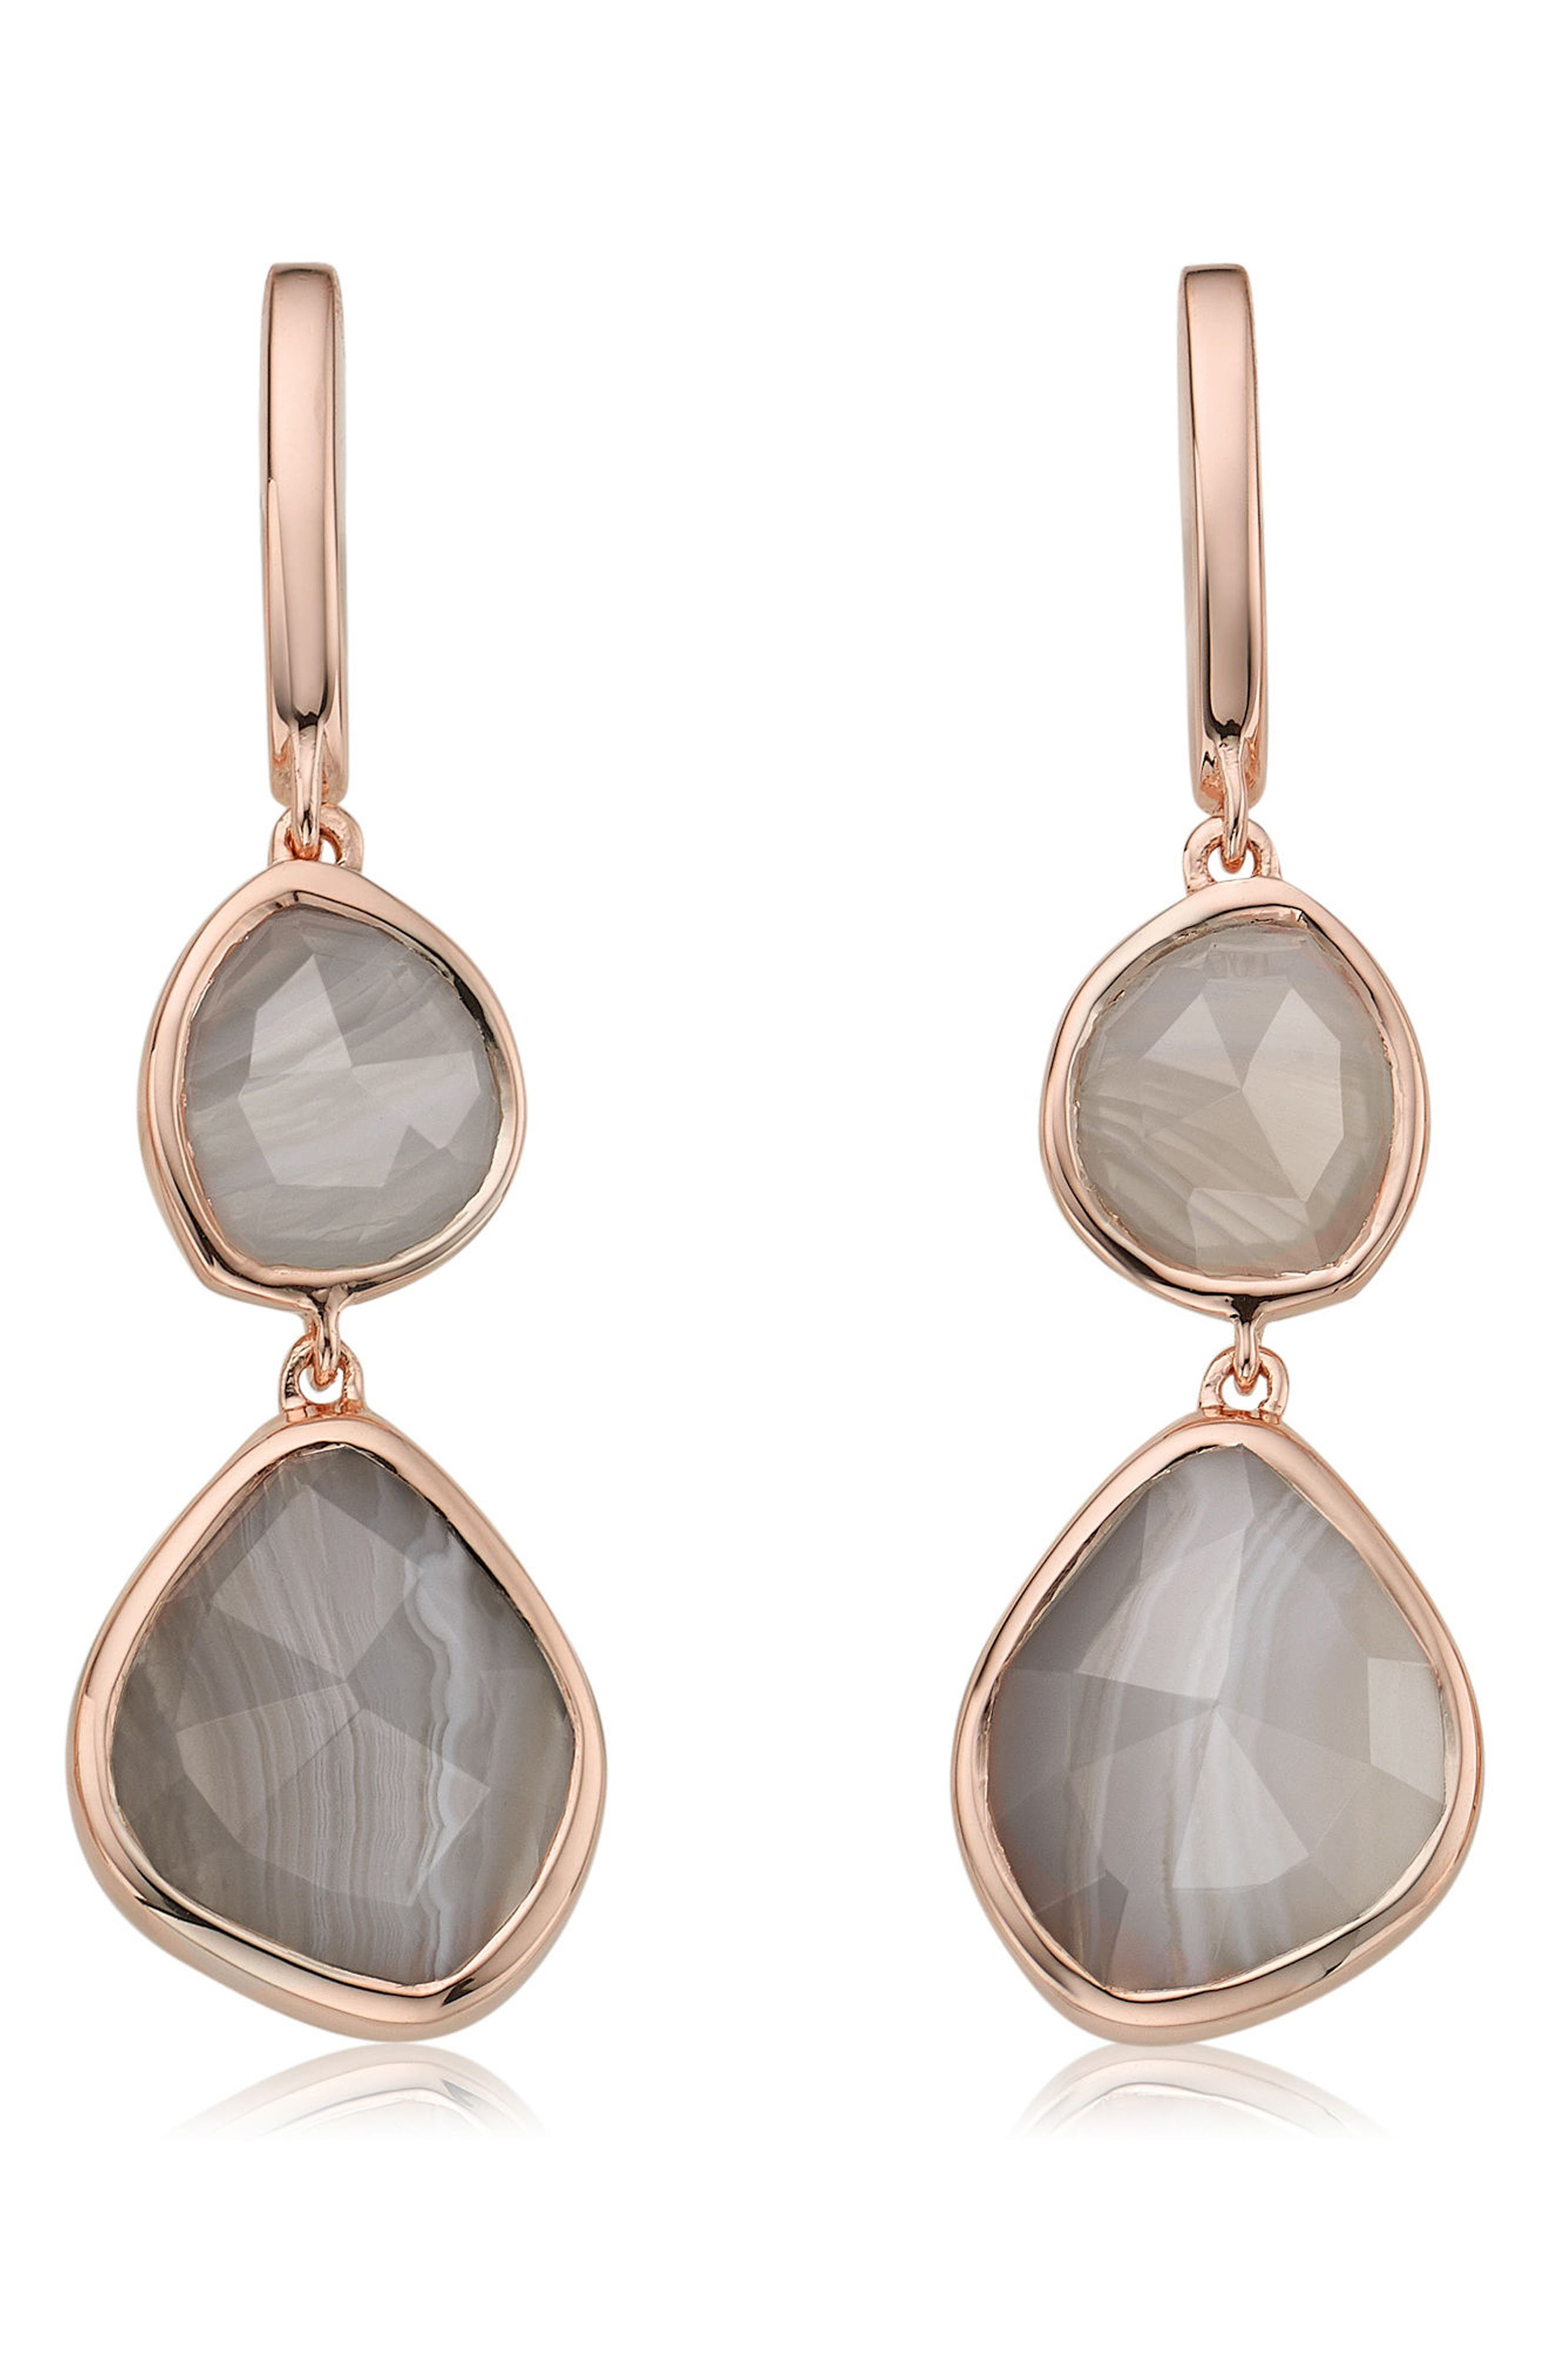 Siren Semiprecious Stone Drop Earrings,                         Main,                         color, Grey Agate/ Rose Gold